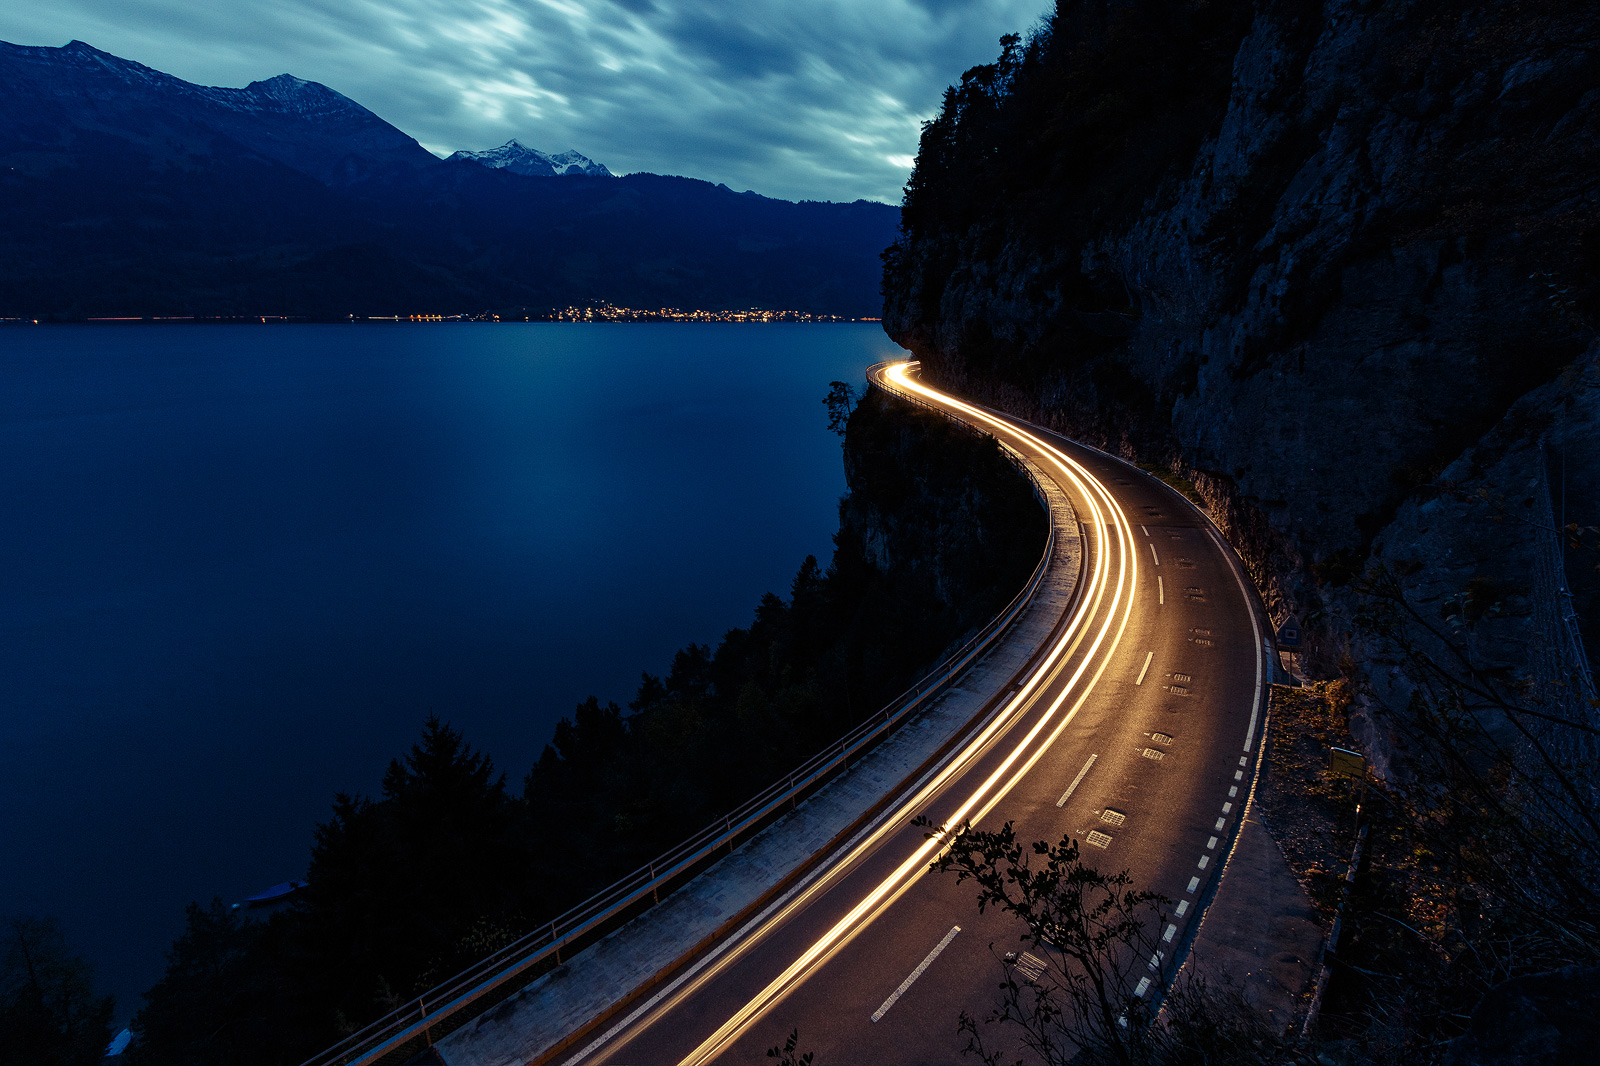 Light trails am Thunersee in der Schweiz